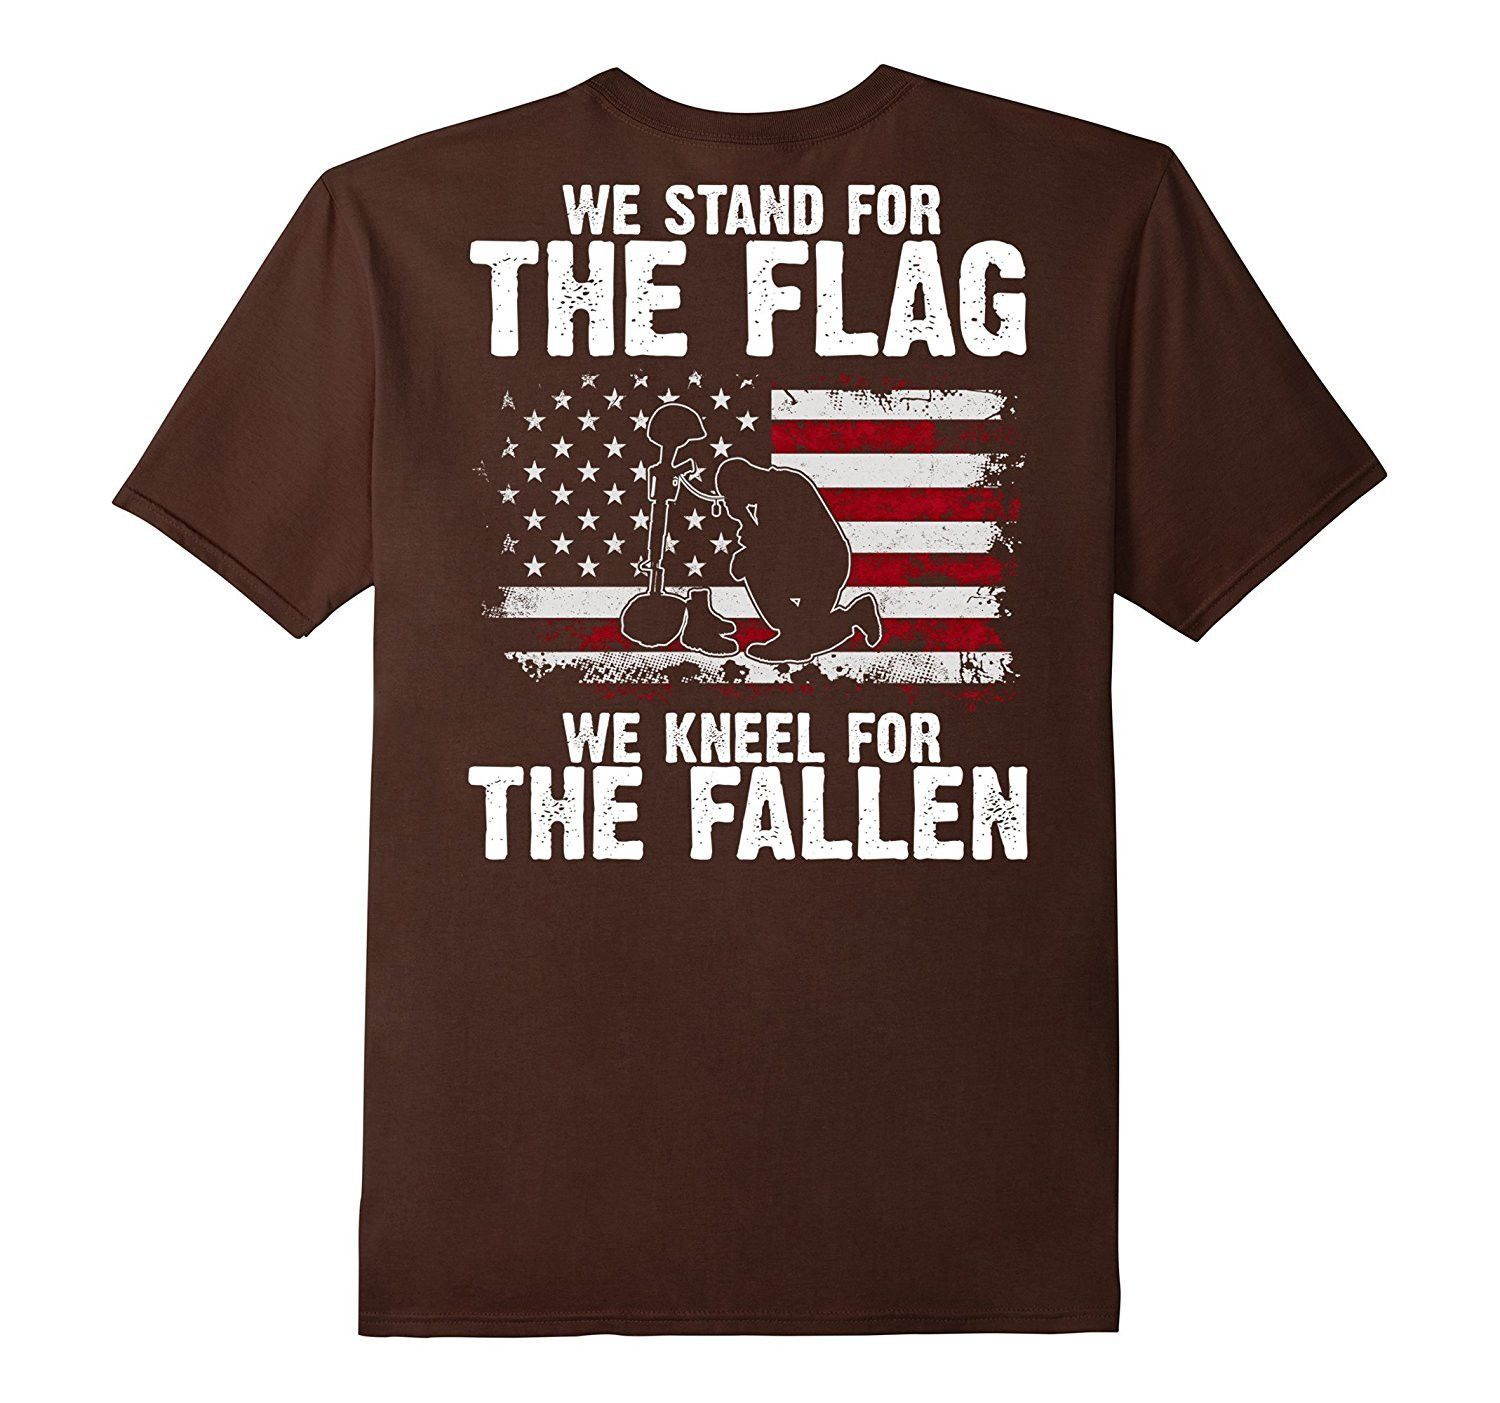 Park Art|My WordPress Blog_I Stand For The Flag And Kneel For The Fallen